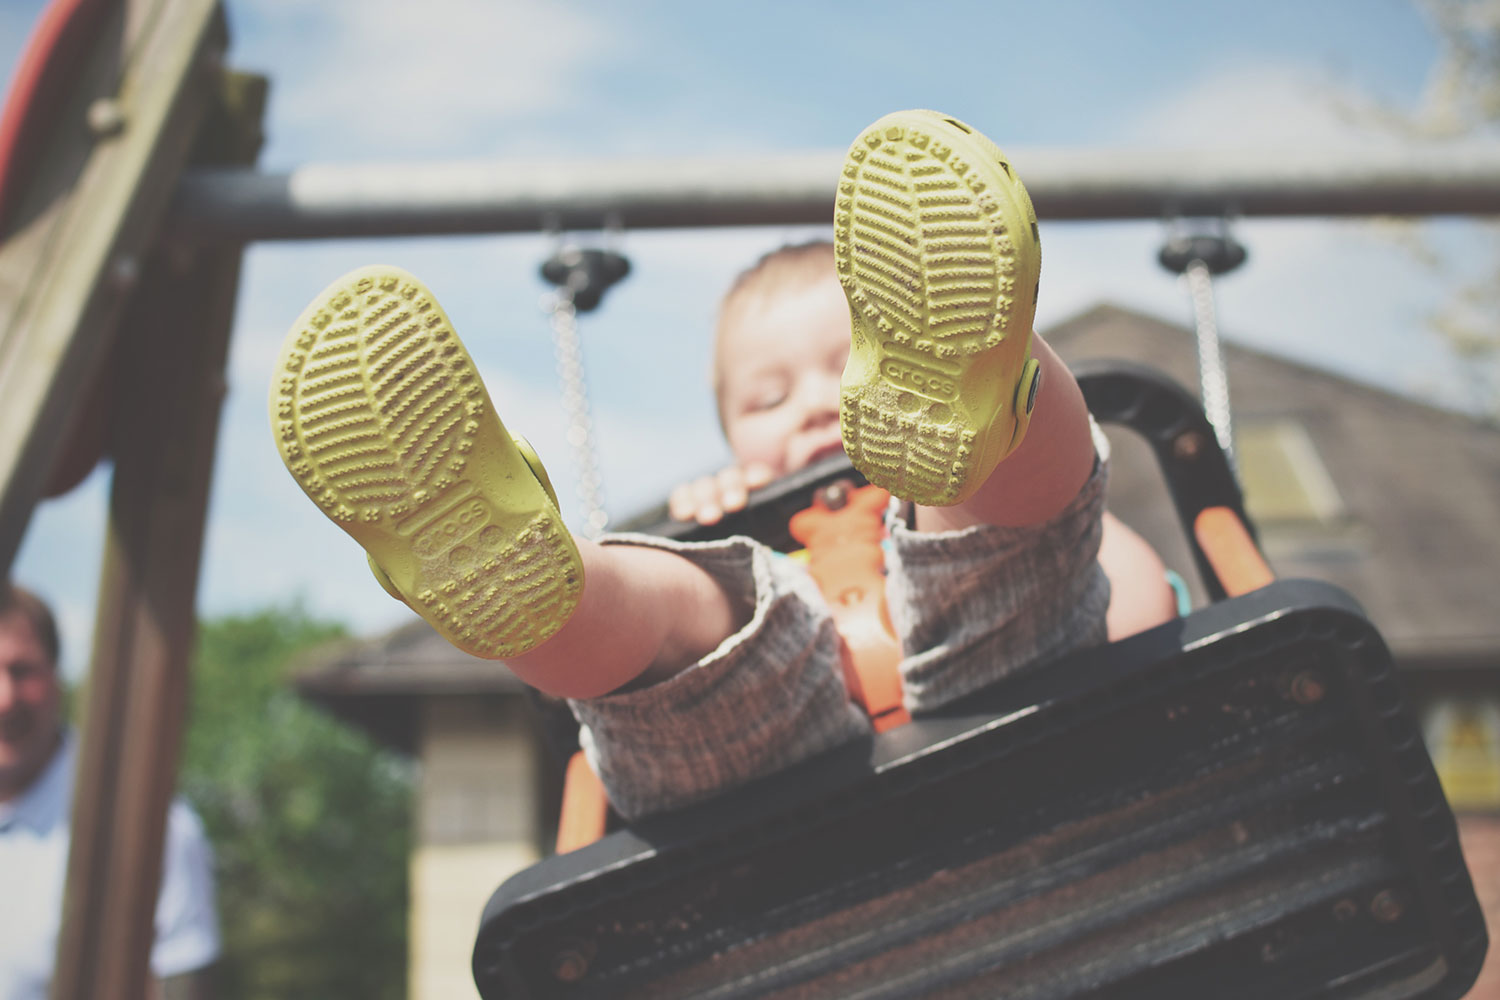 One Beautiful Sweaty Sunday at Stratford-upon-Avon - Toddler playing on the swings showing off his green Crocs shoes at Stratford-upon-Avon park